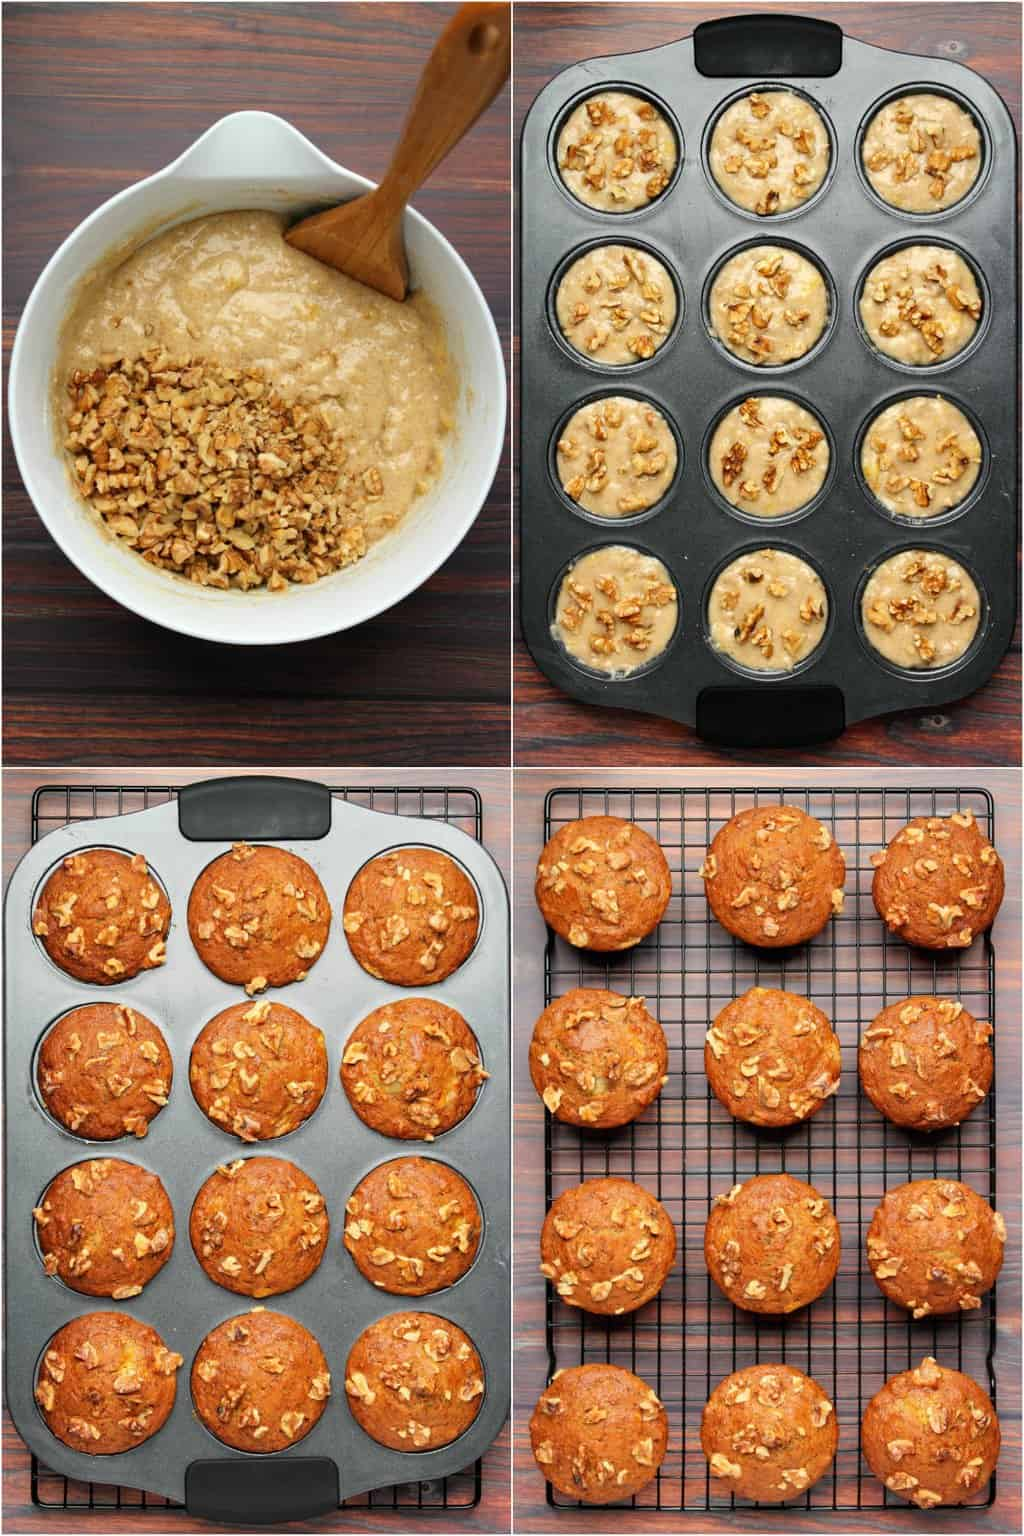 Step by step process photo collage of making vegan banana muffins.